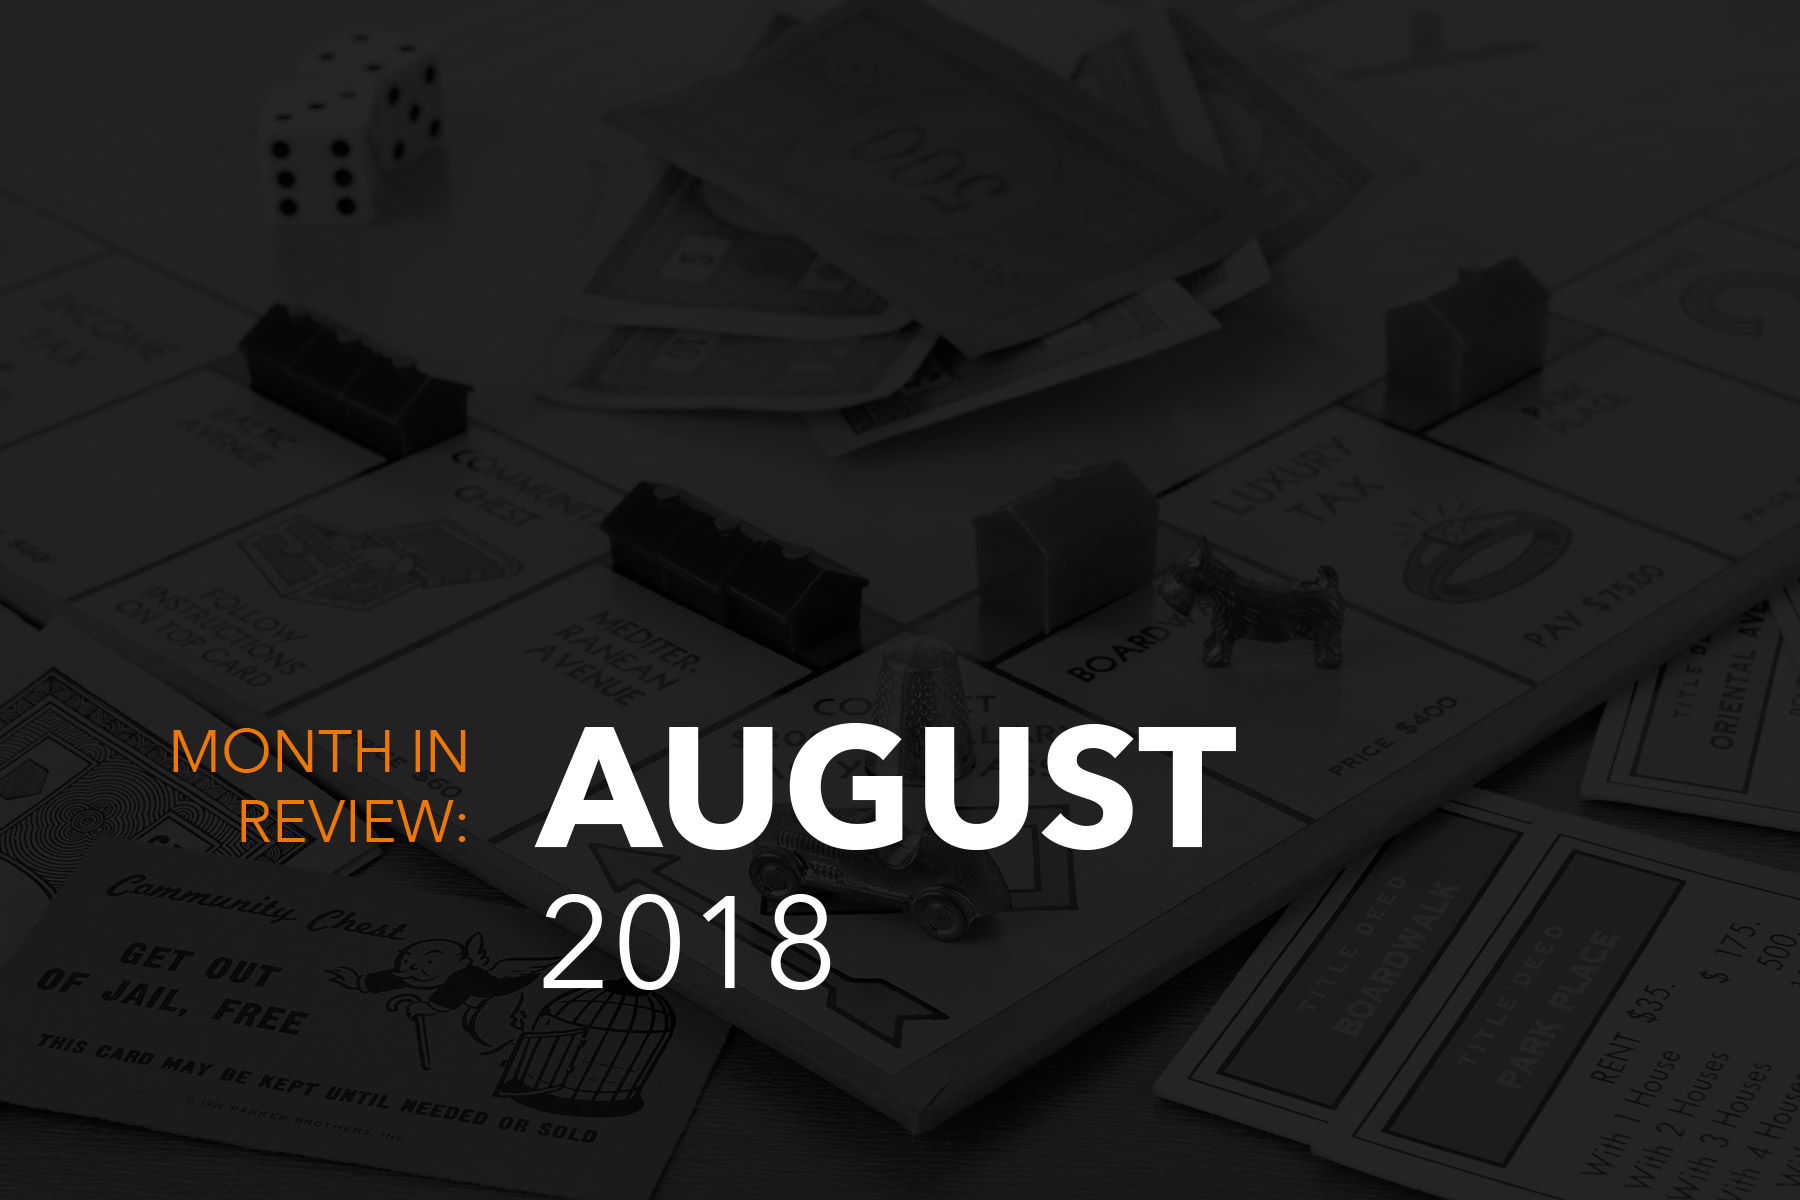 month review august 2018